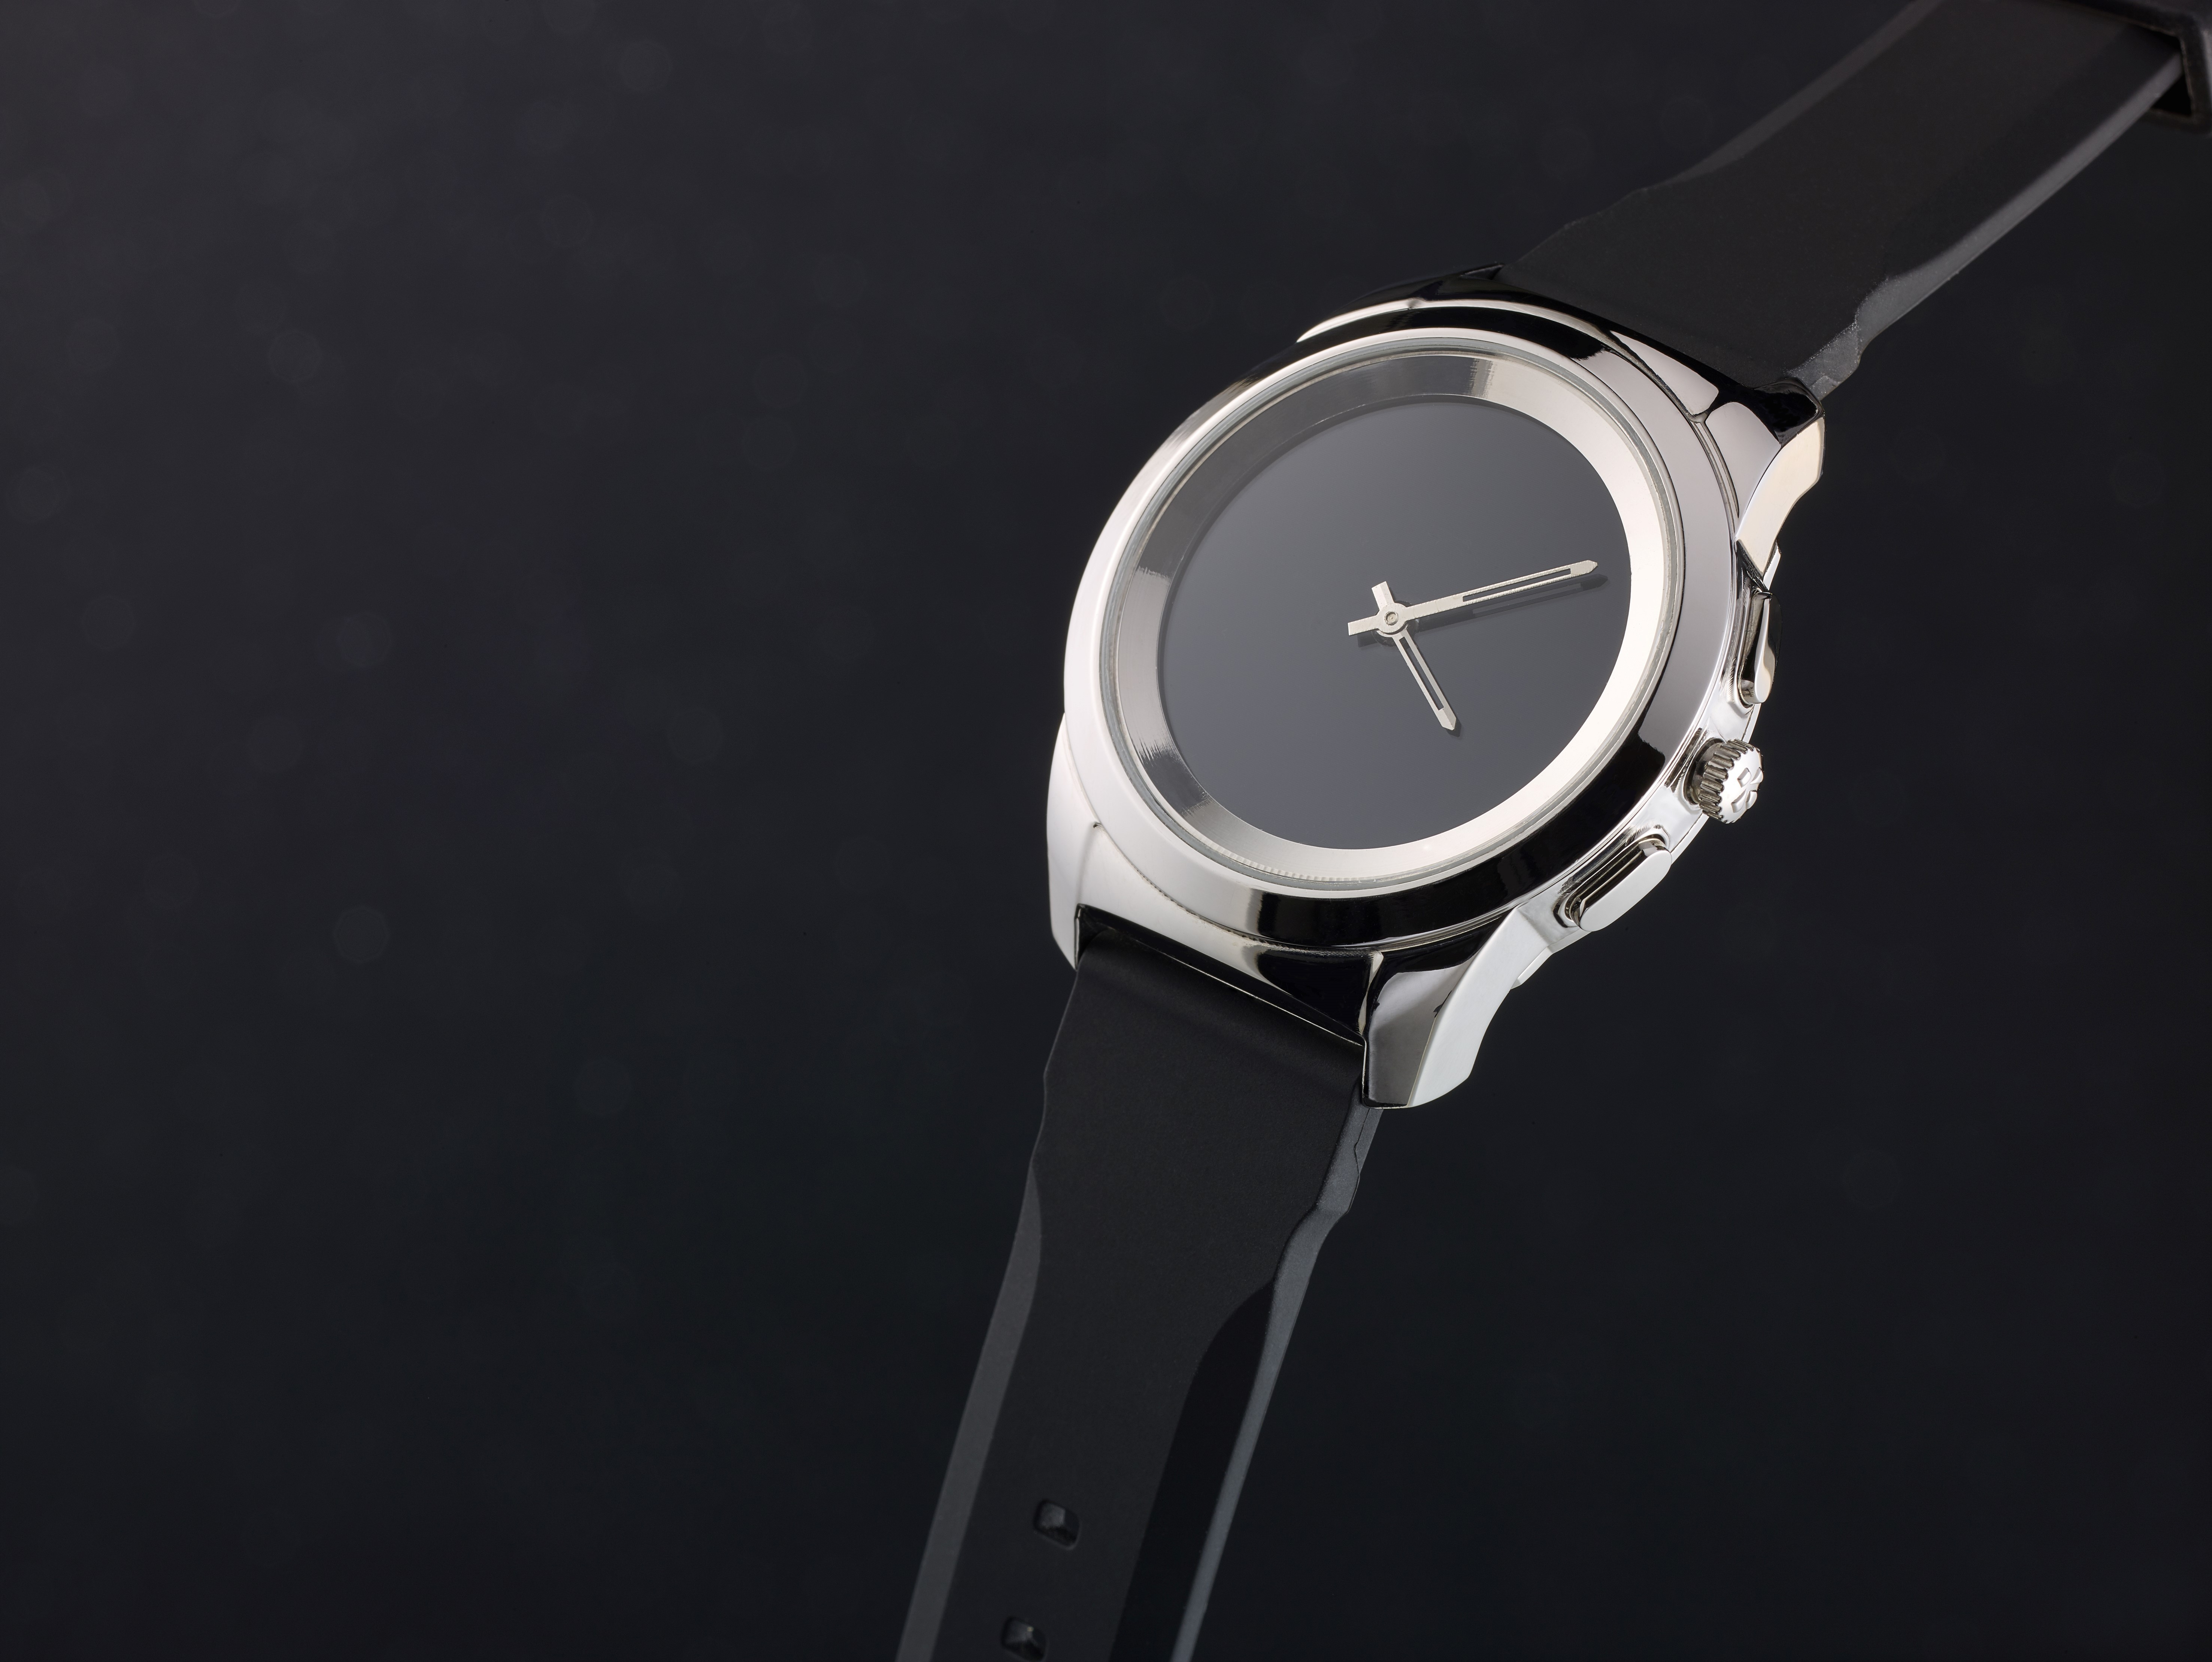 hybrid watch first s the modern next nevo world minimalist previous watches unknown